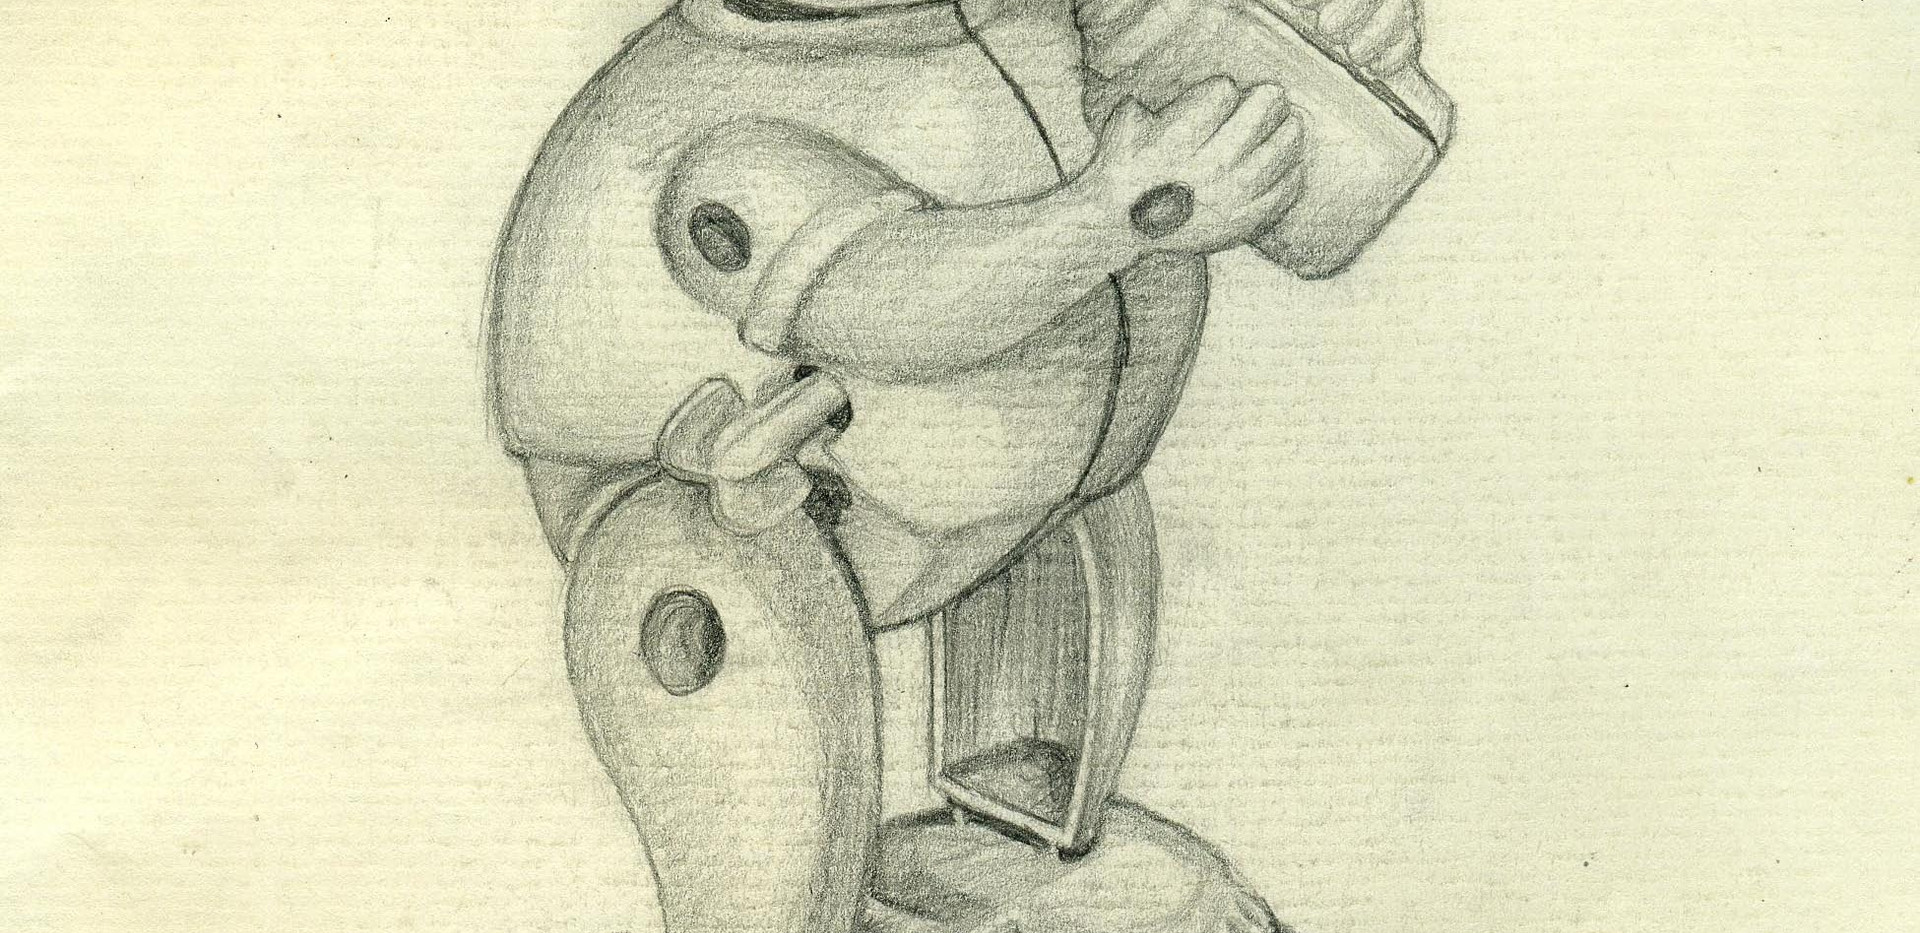 pencil on paper, 2008